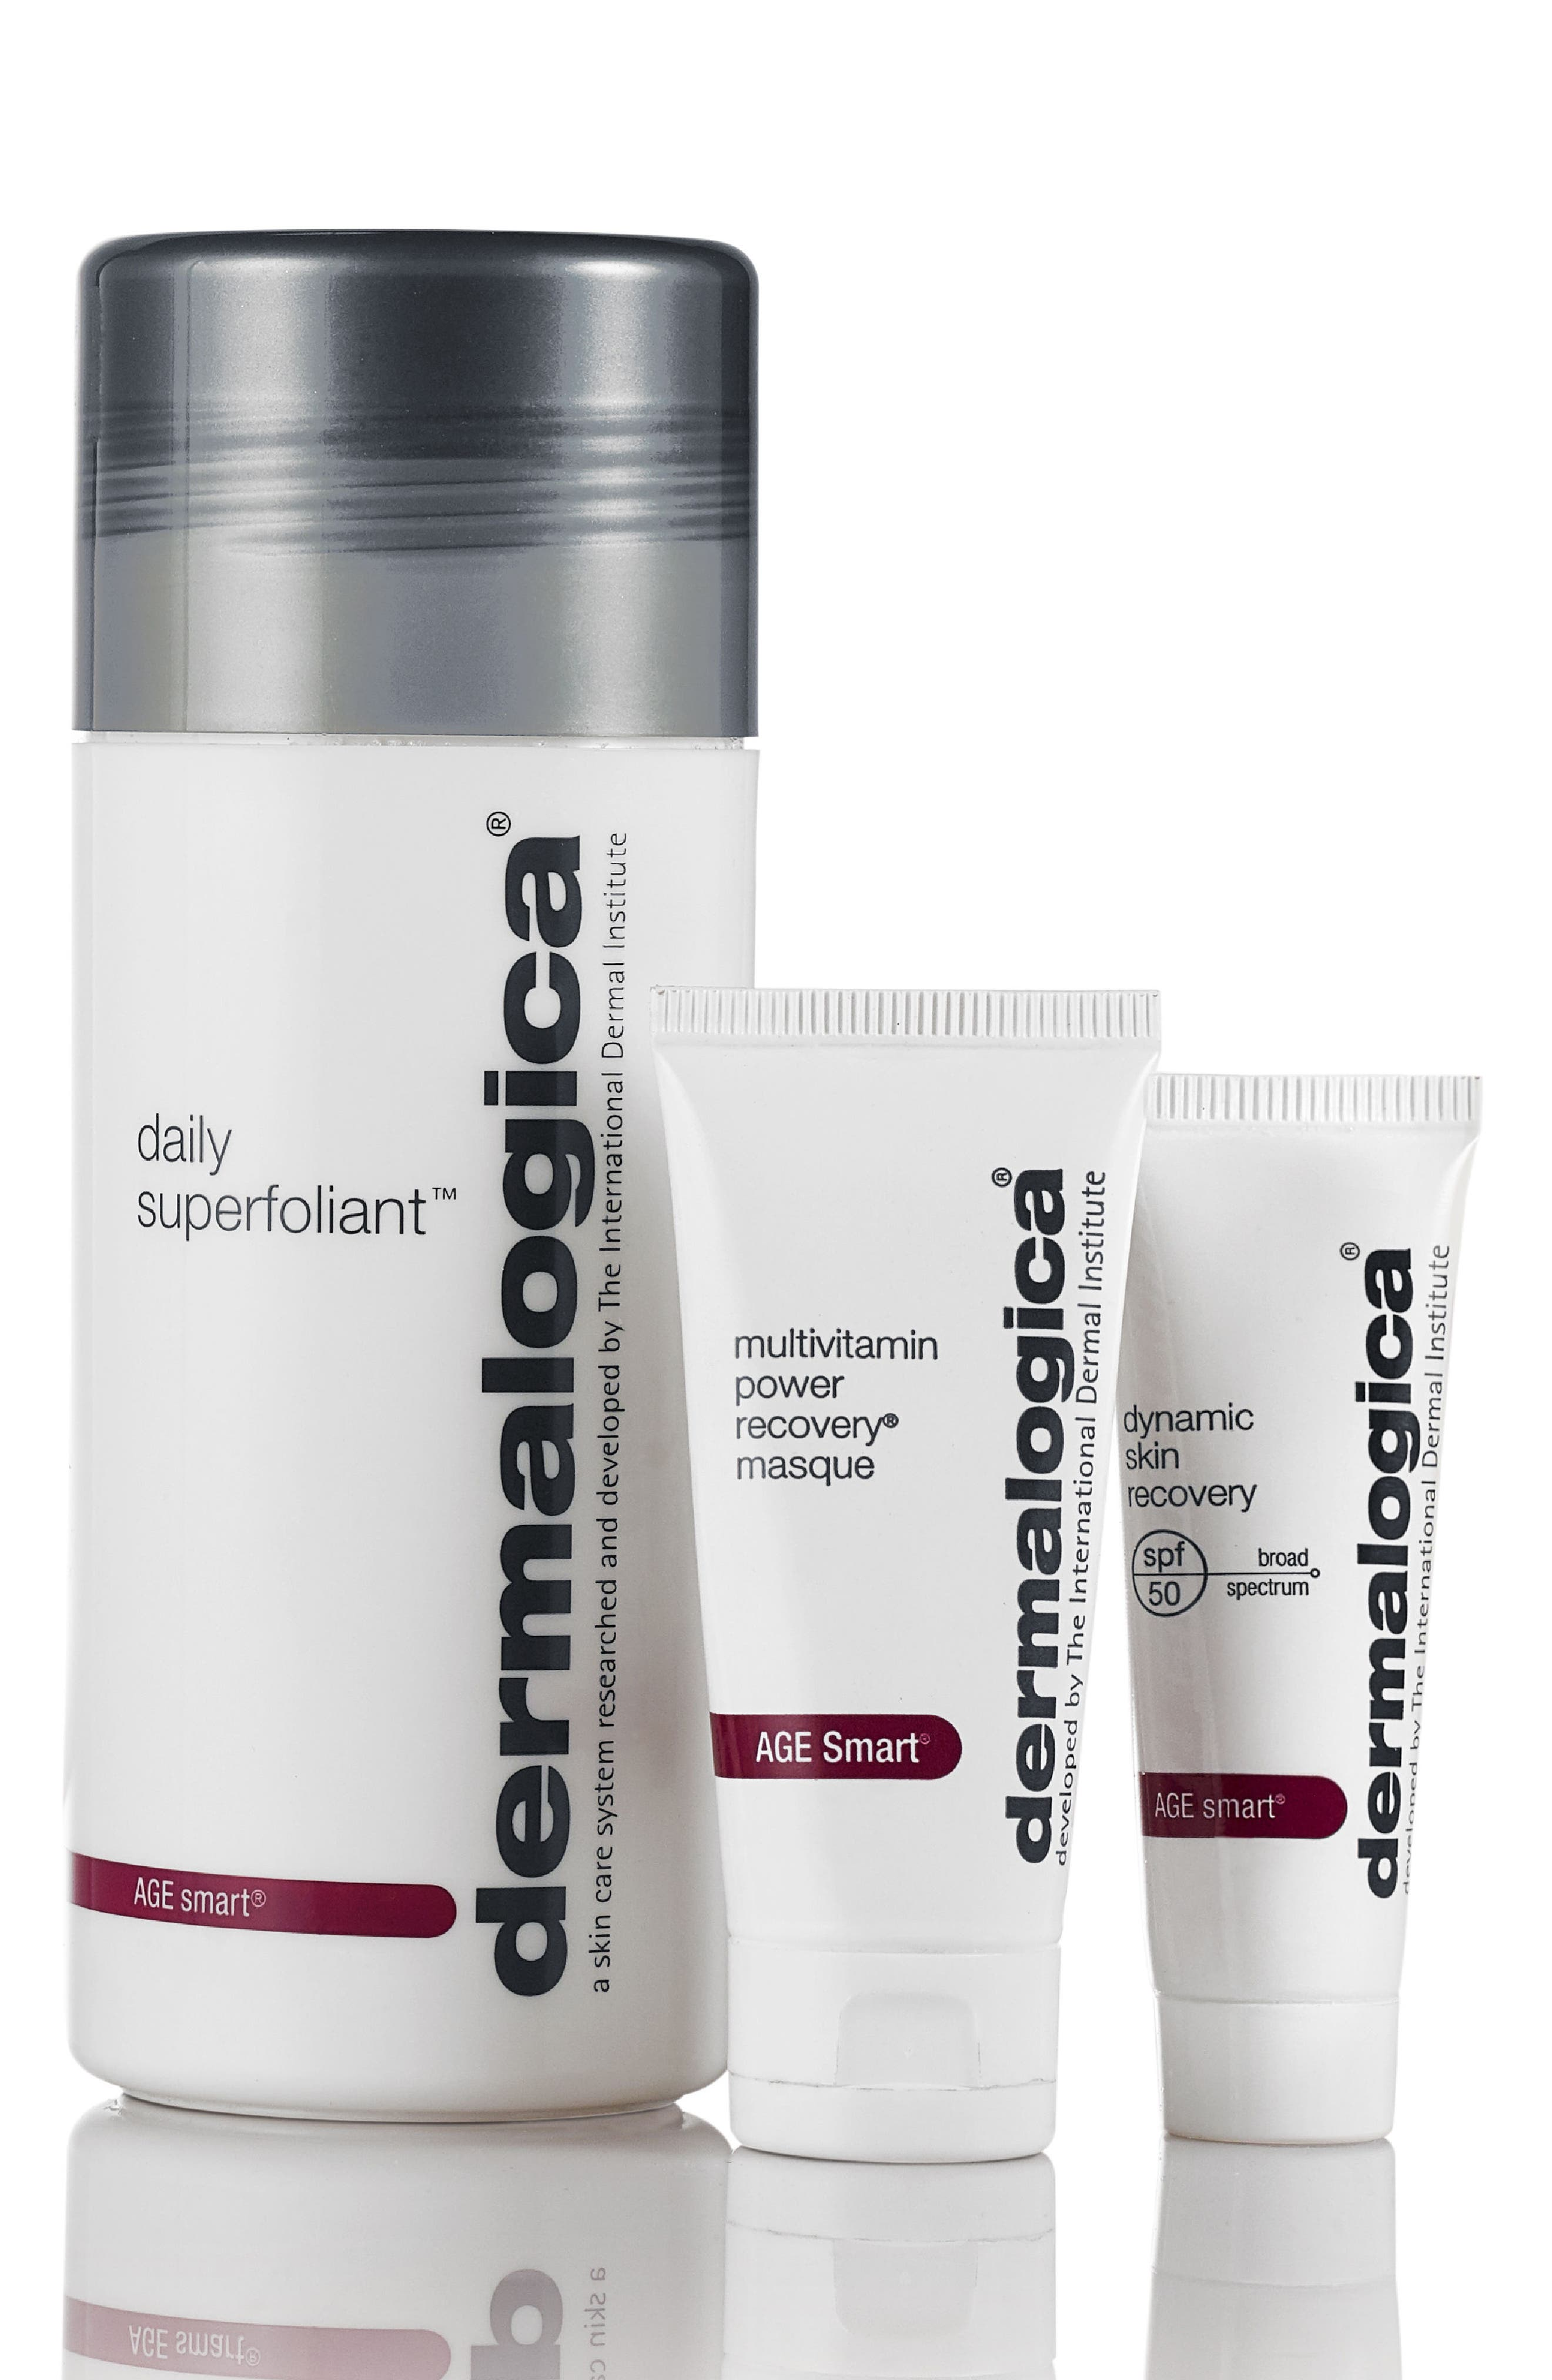 dermalogica® Age Smart Anti-Aging Power Trio ($89 Value)